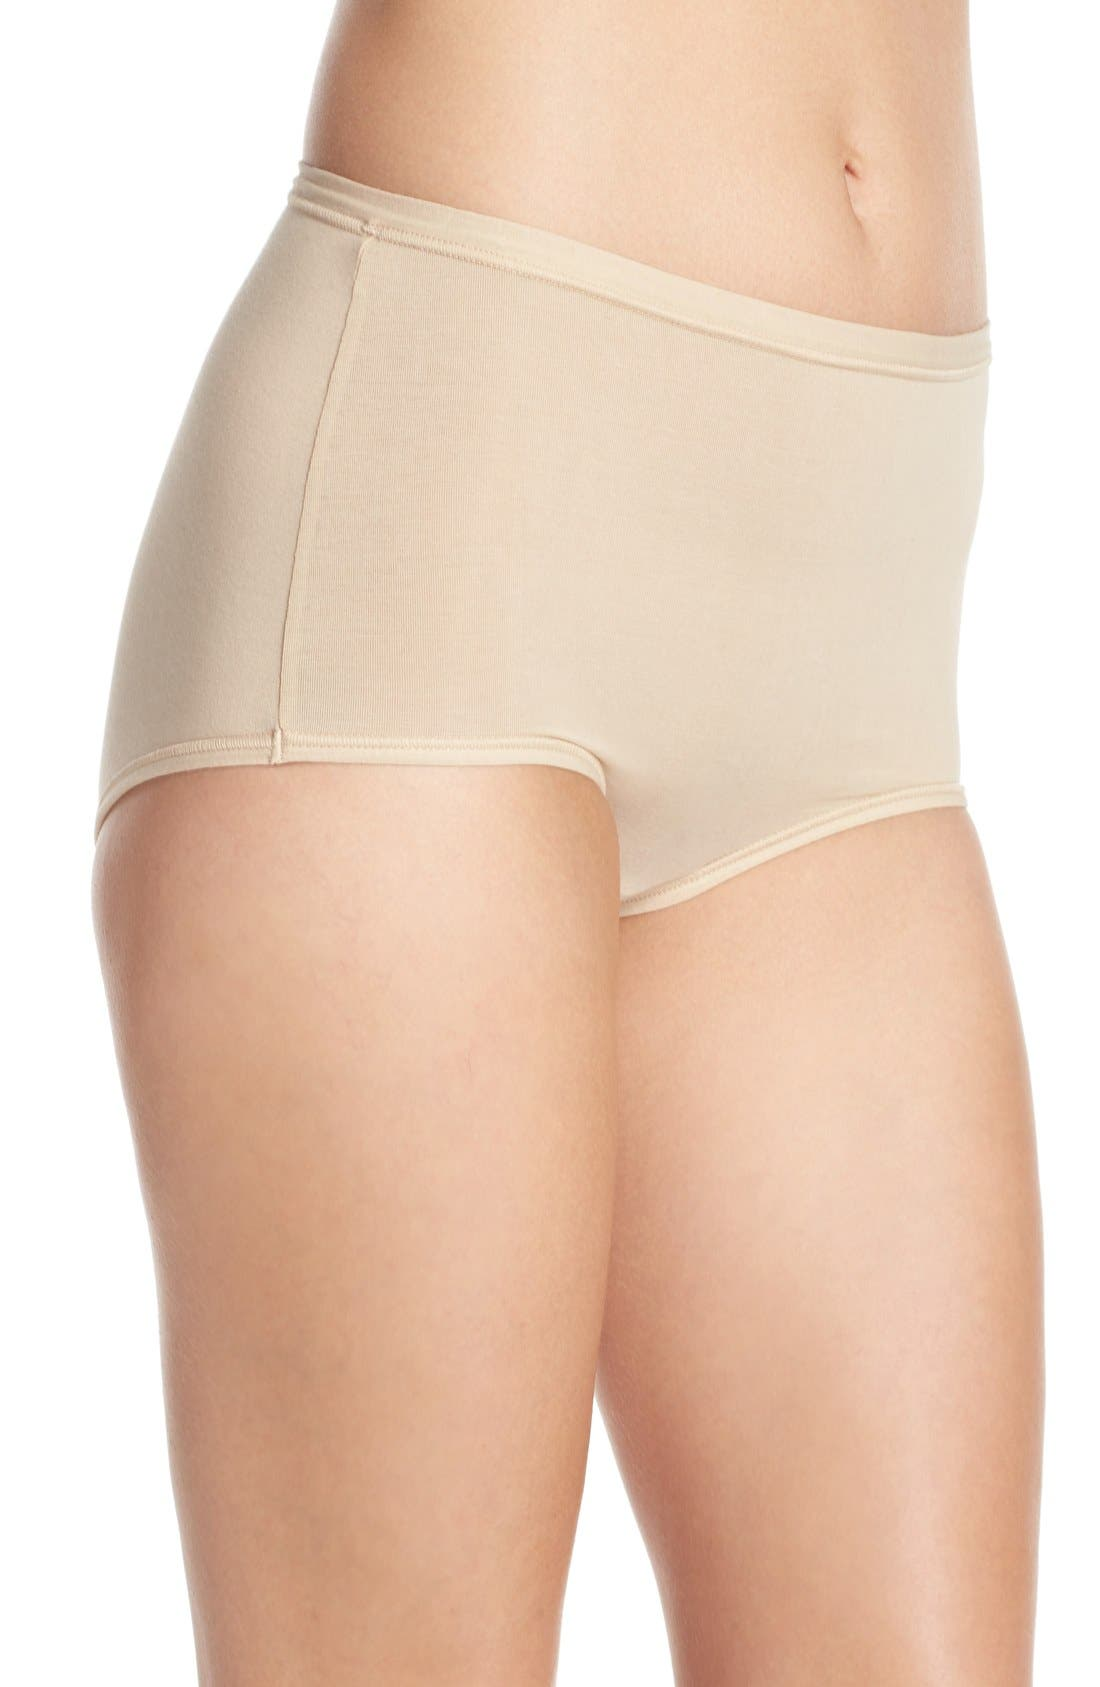 B Fitting Briefs,                             Alternate thumbnail 3, color,                             Nude